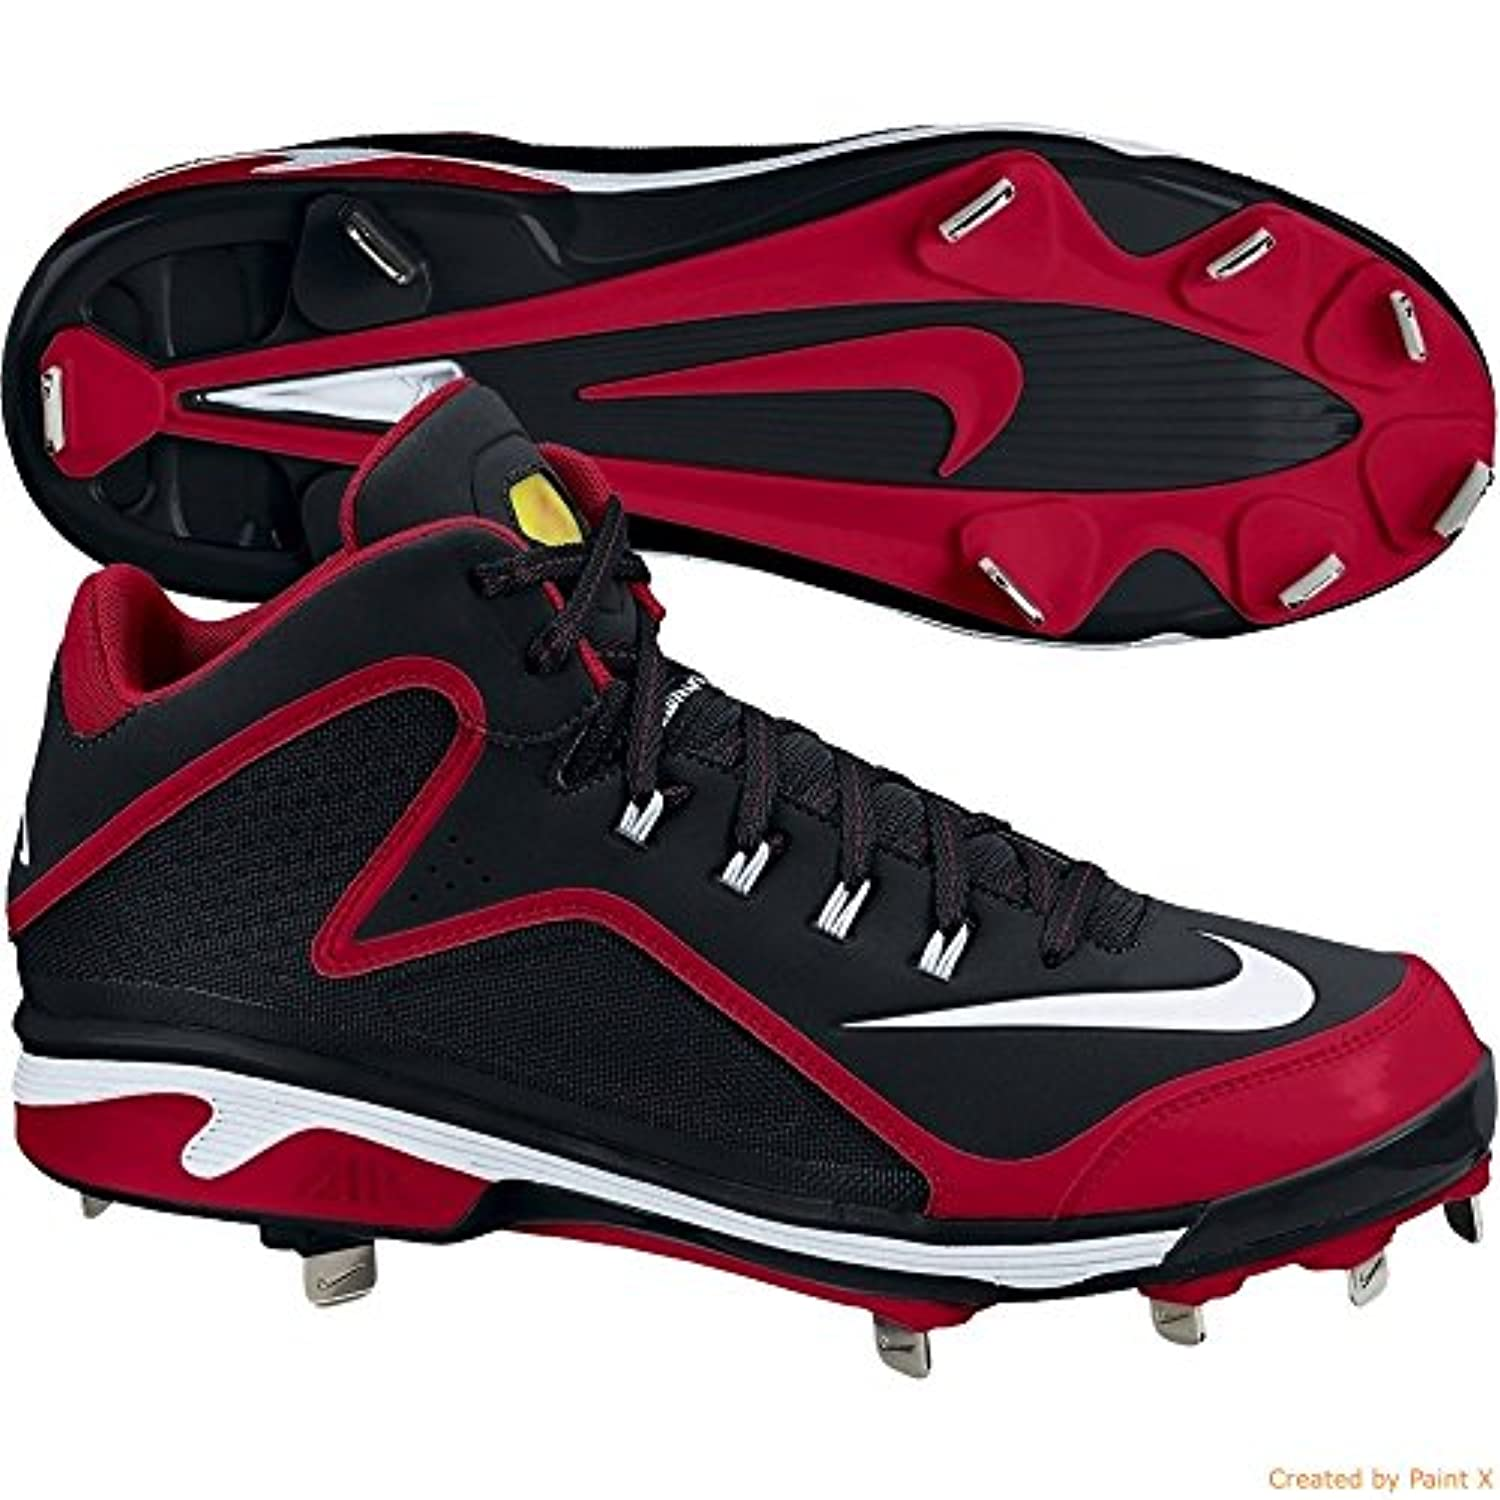 Nike Air Swingman MVP 2 MD Metal Baseball Cleat Black Red 13 Men's